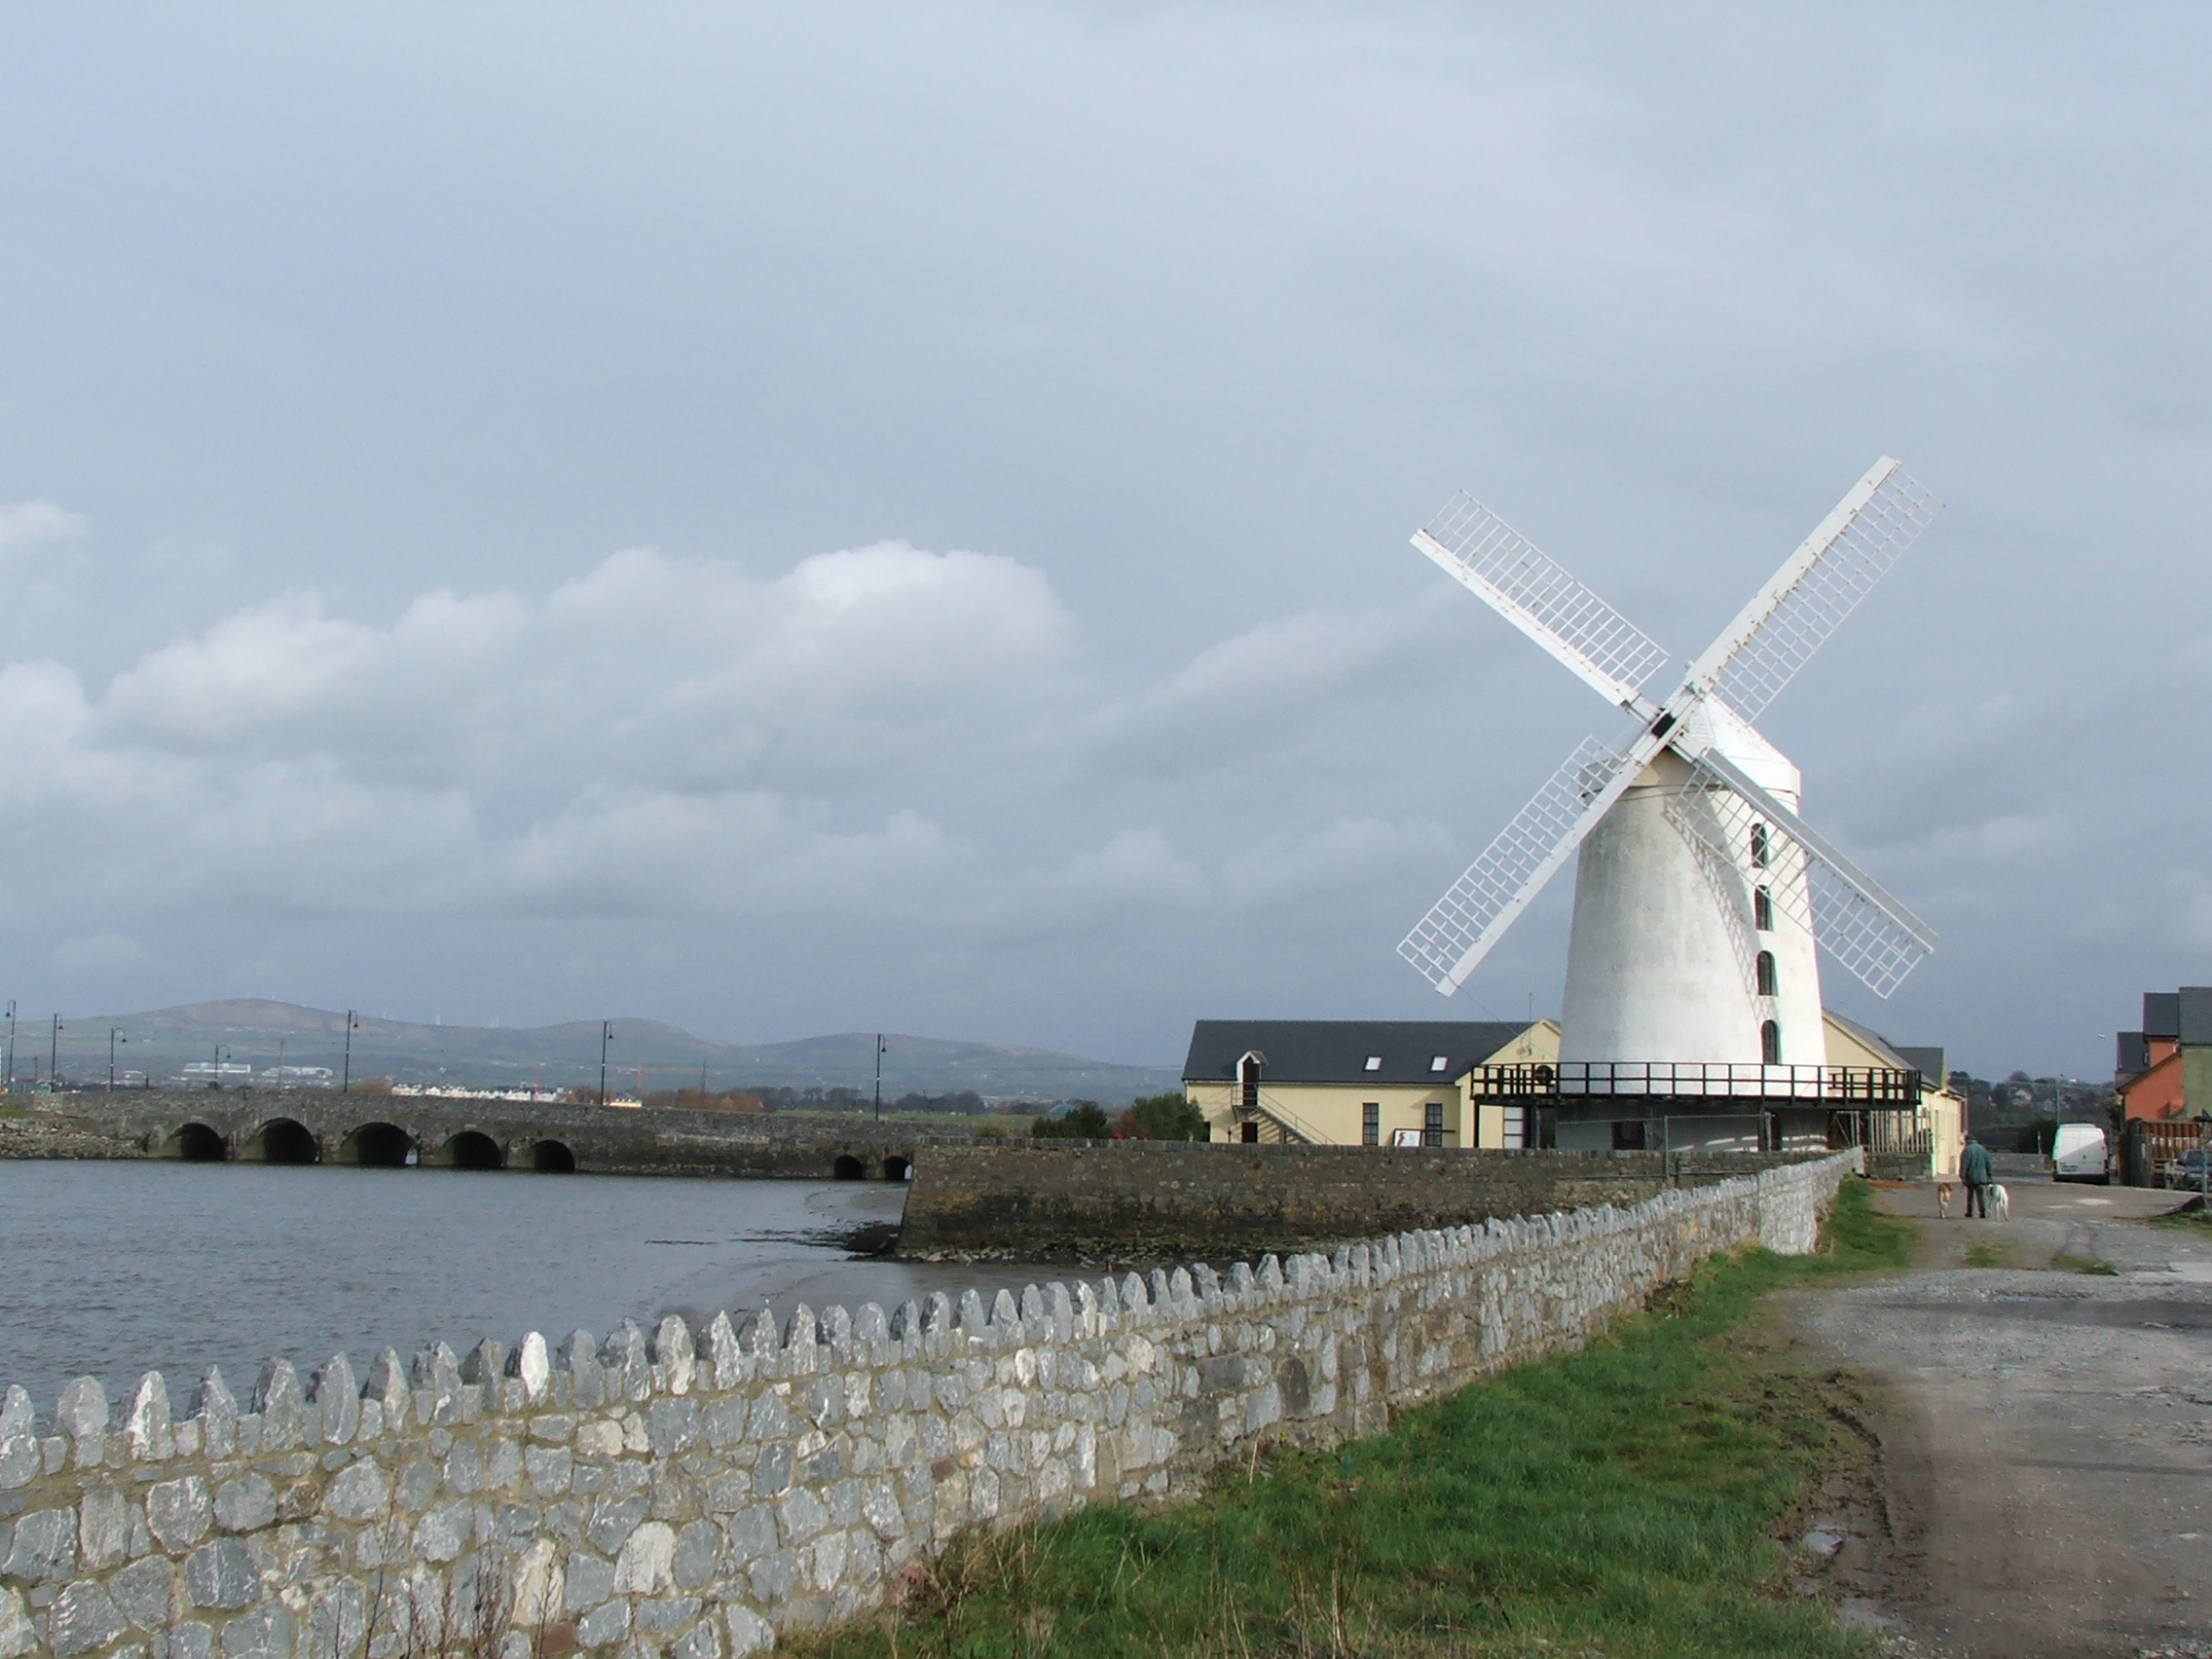 http://upload.wikimedia.org/wikipedia/commons/b/b6/Blennerville_windmill.jpg